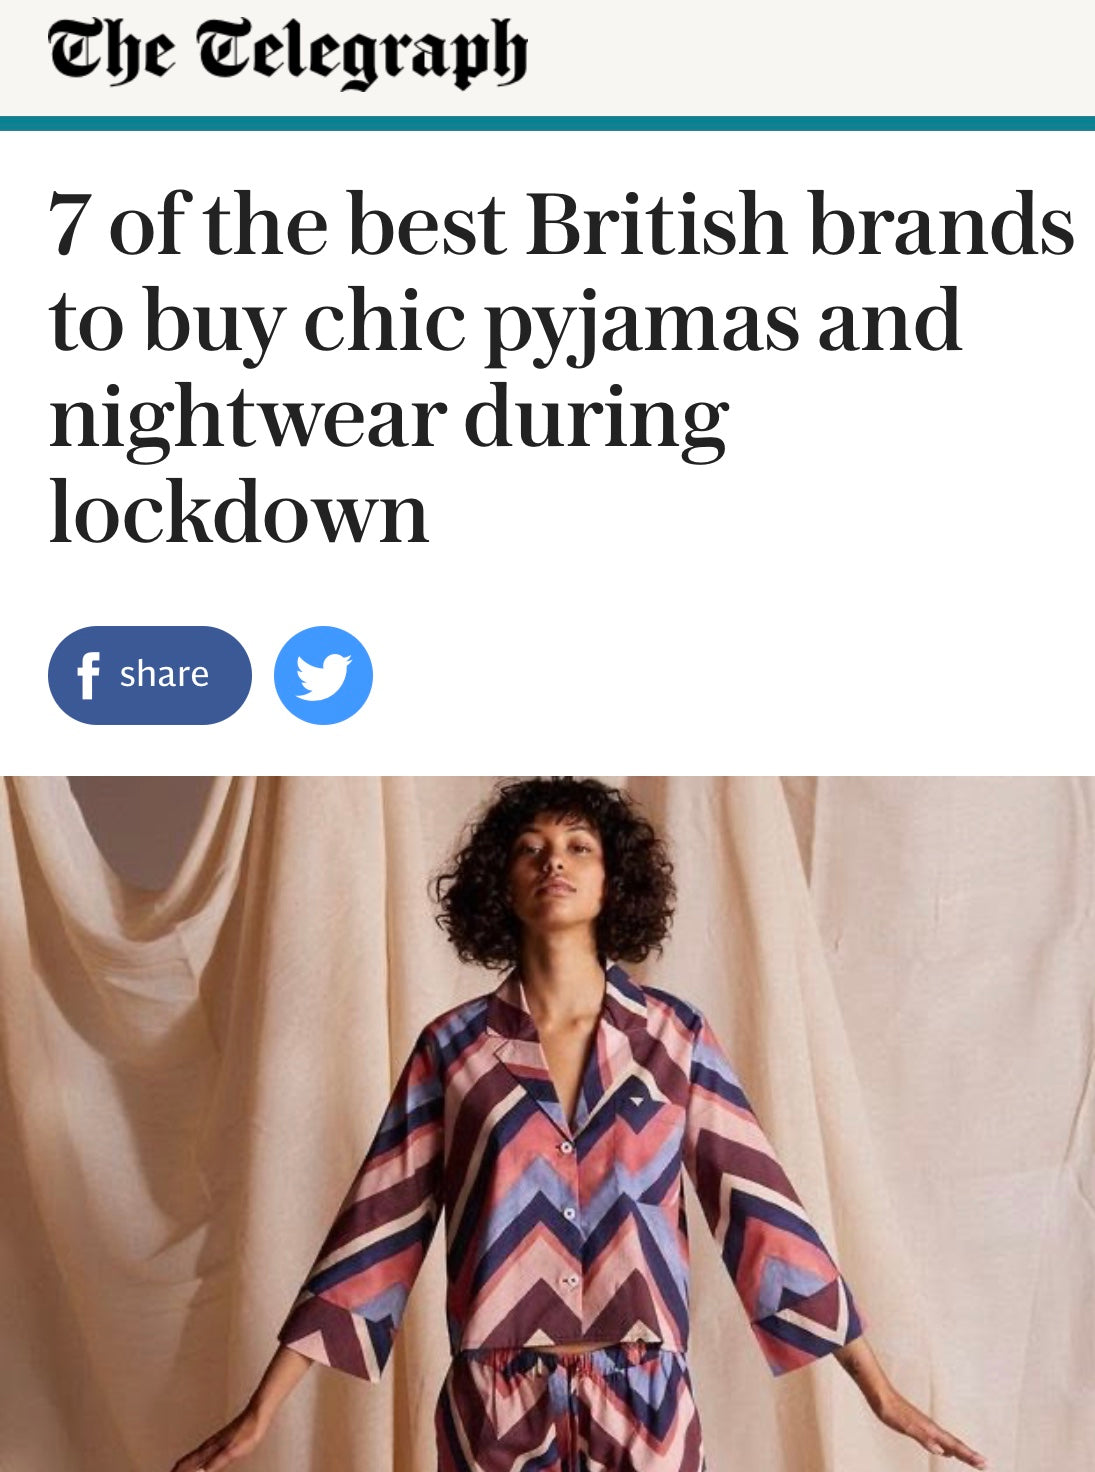 7 of the best British brands to buy chic pyjamas and nightwear from